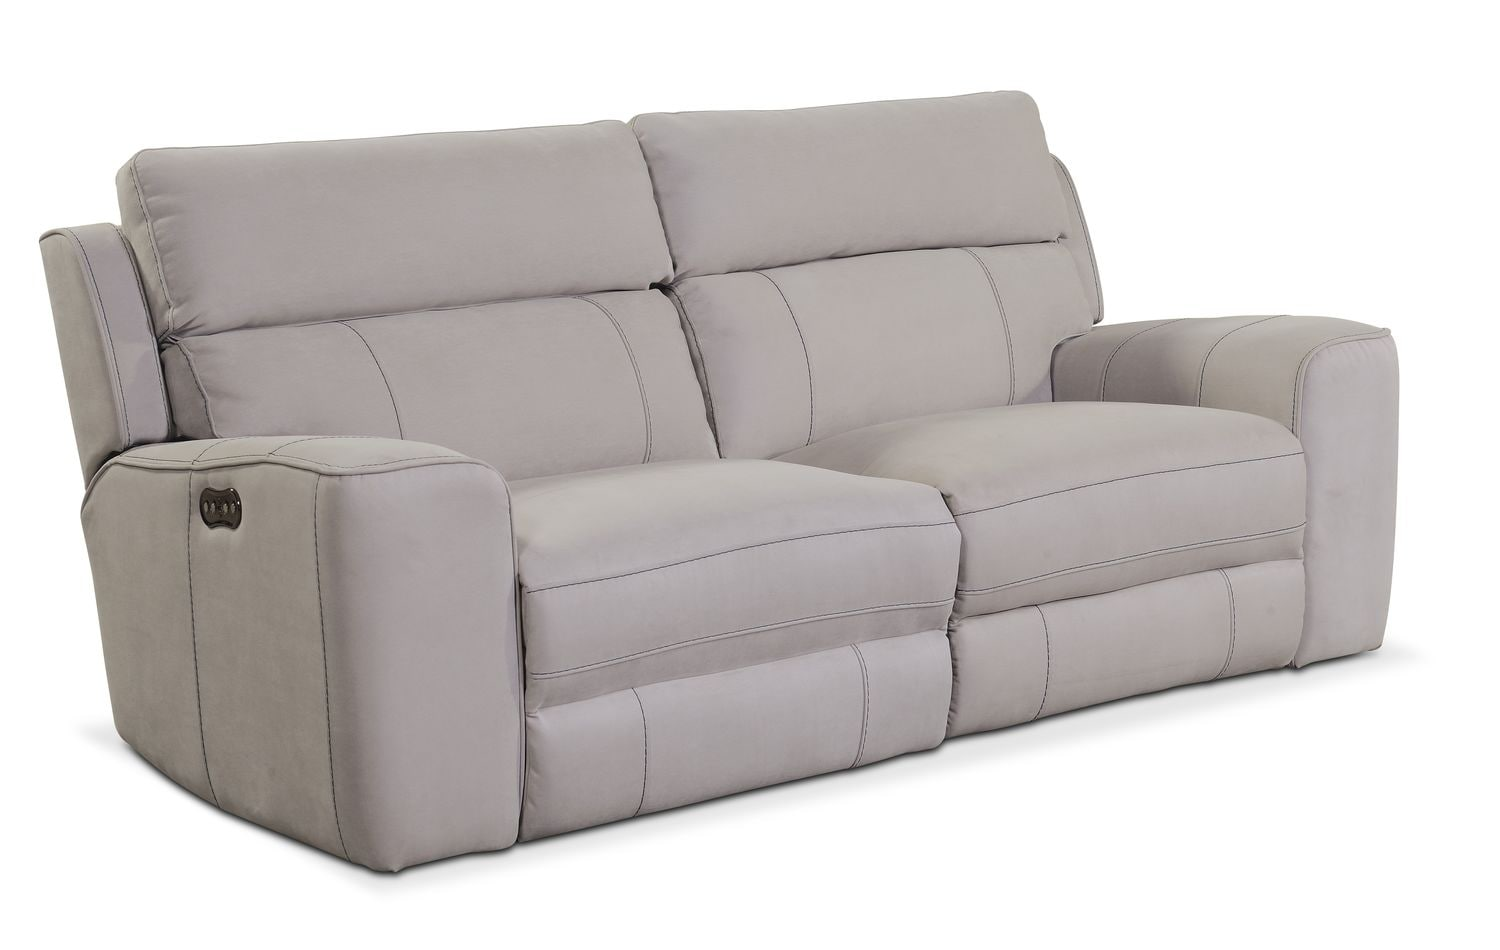 Reclining Sofa Bed Pulsar Dual Reclining Sofa Black Value